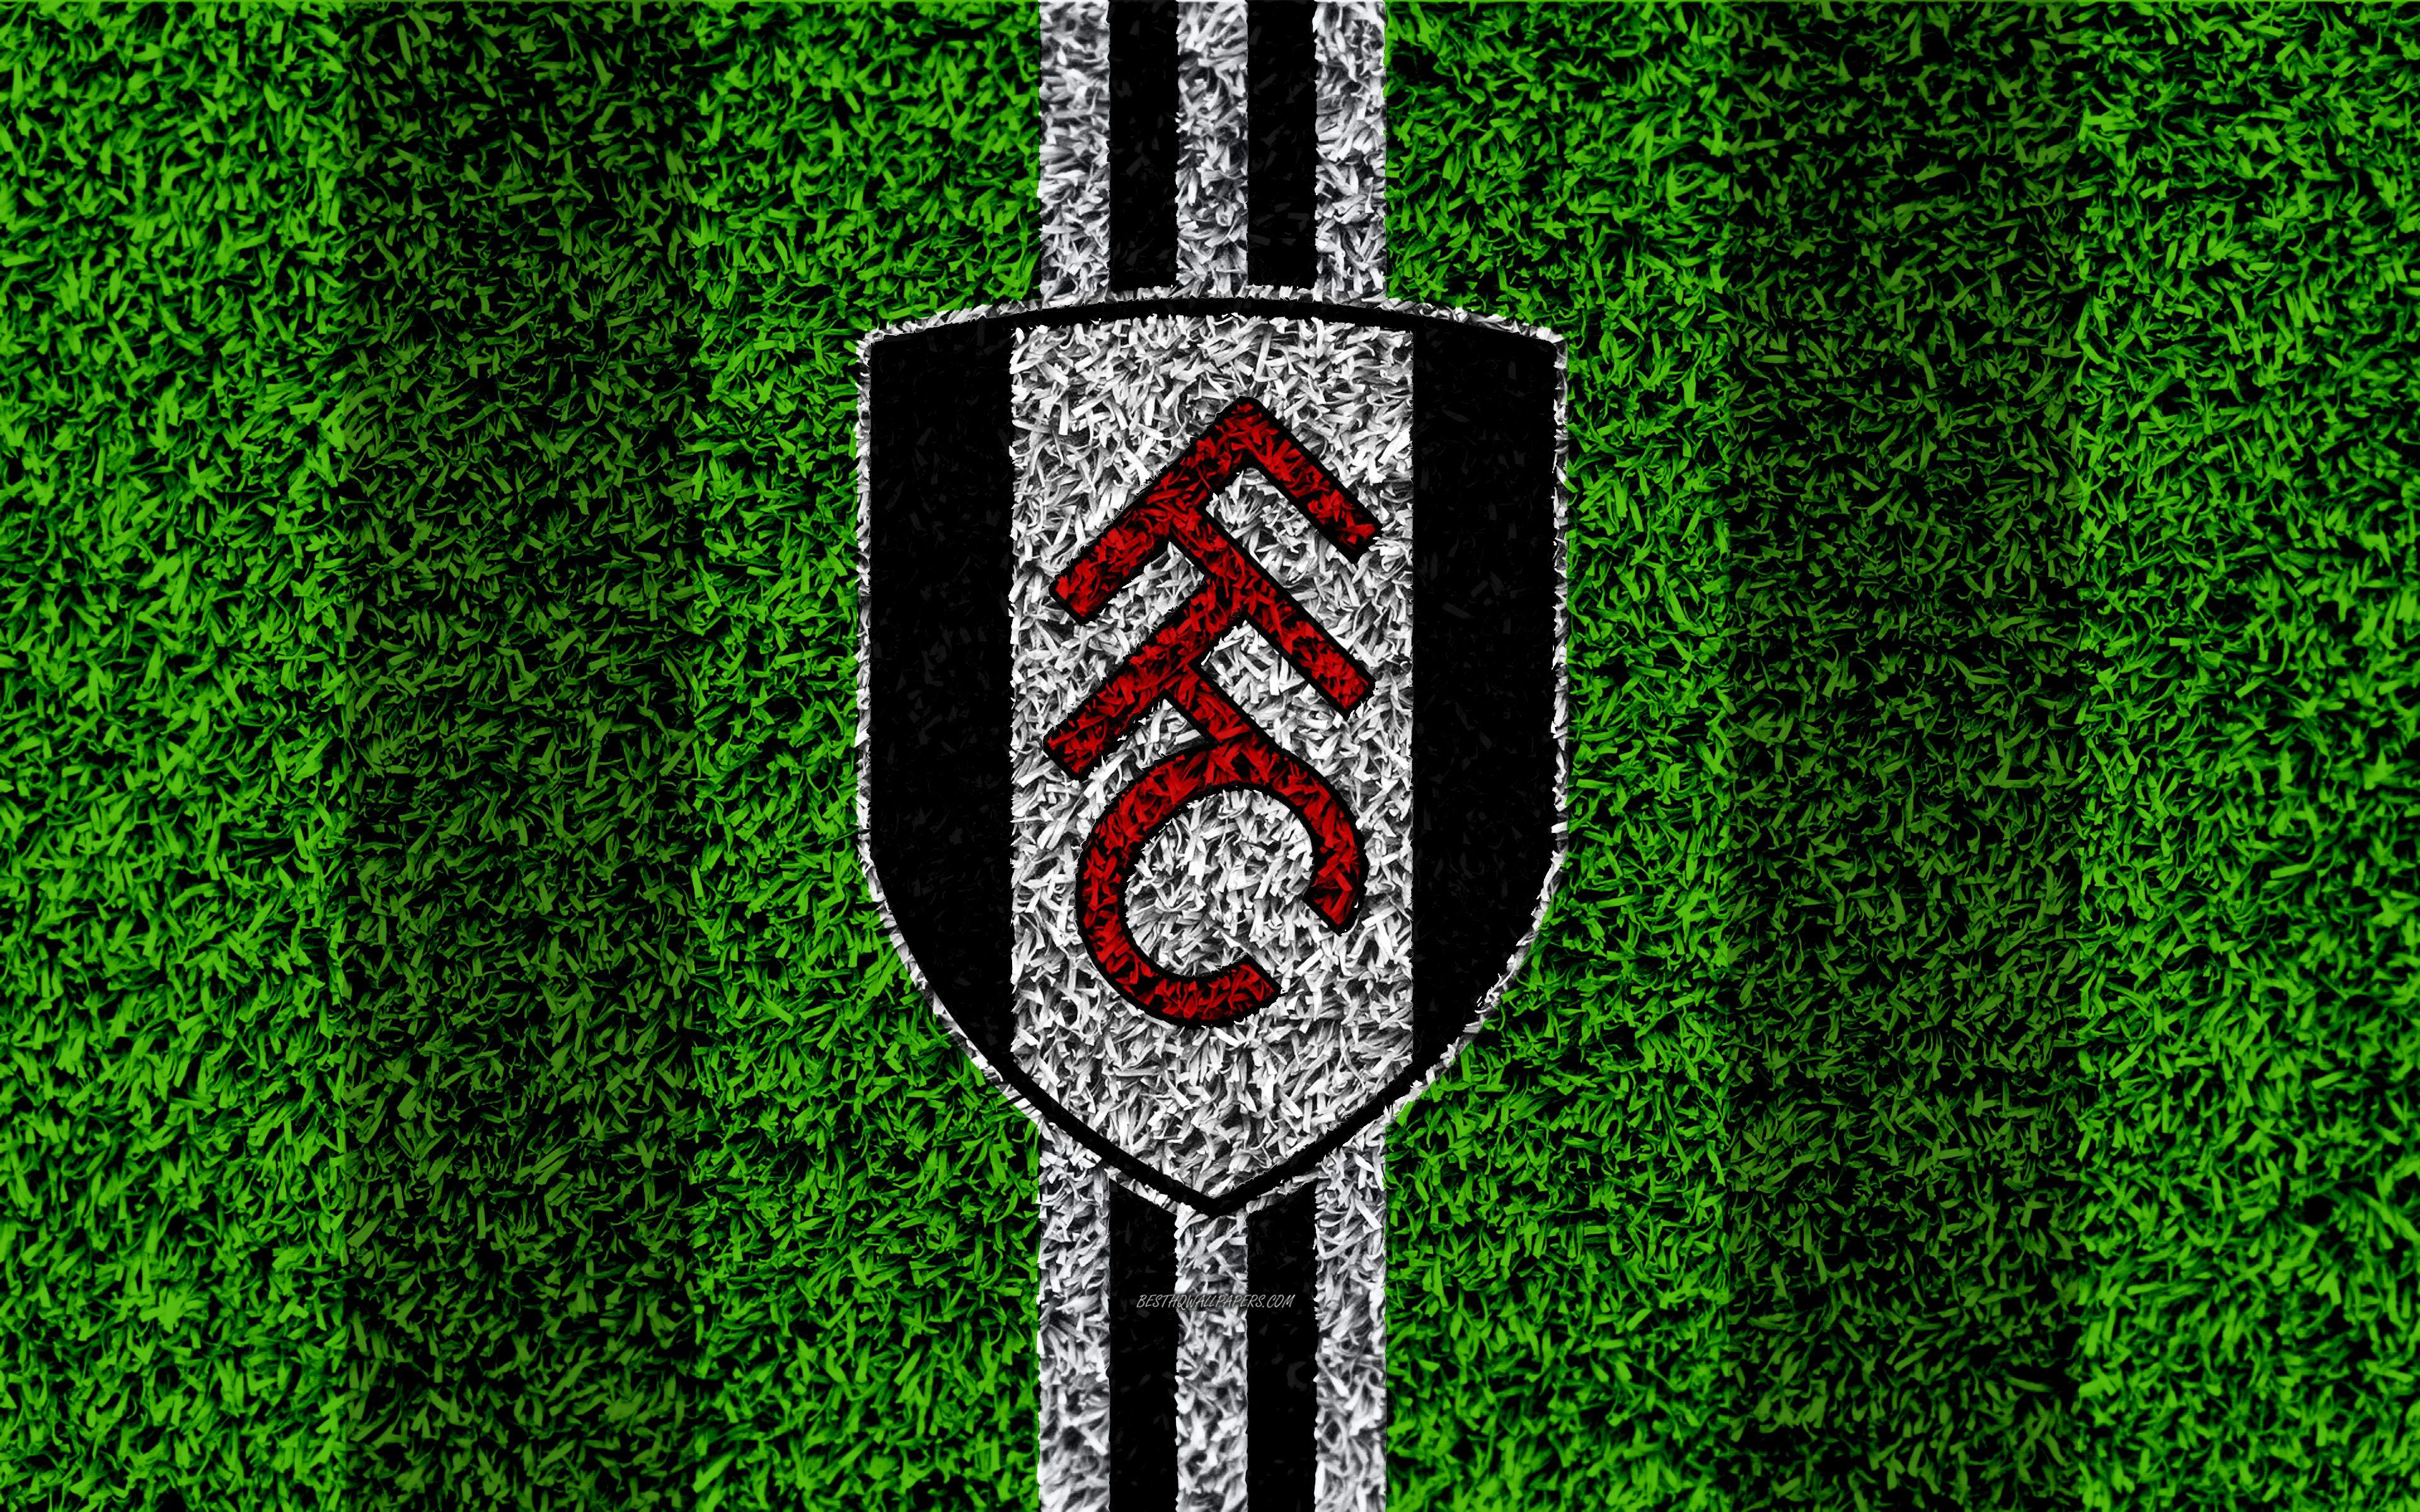 Download wallpapers Fulham FC, 4k, football lawn, logo, emblem